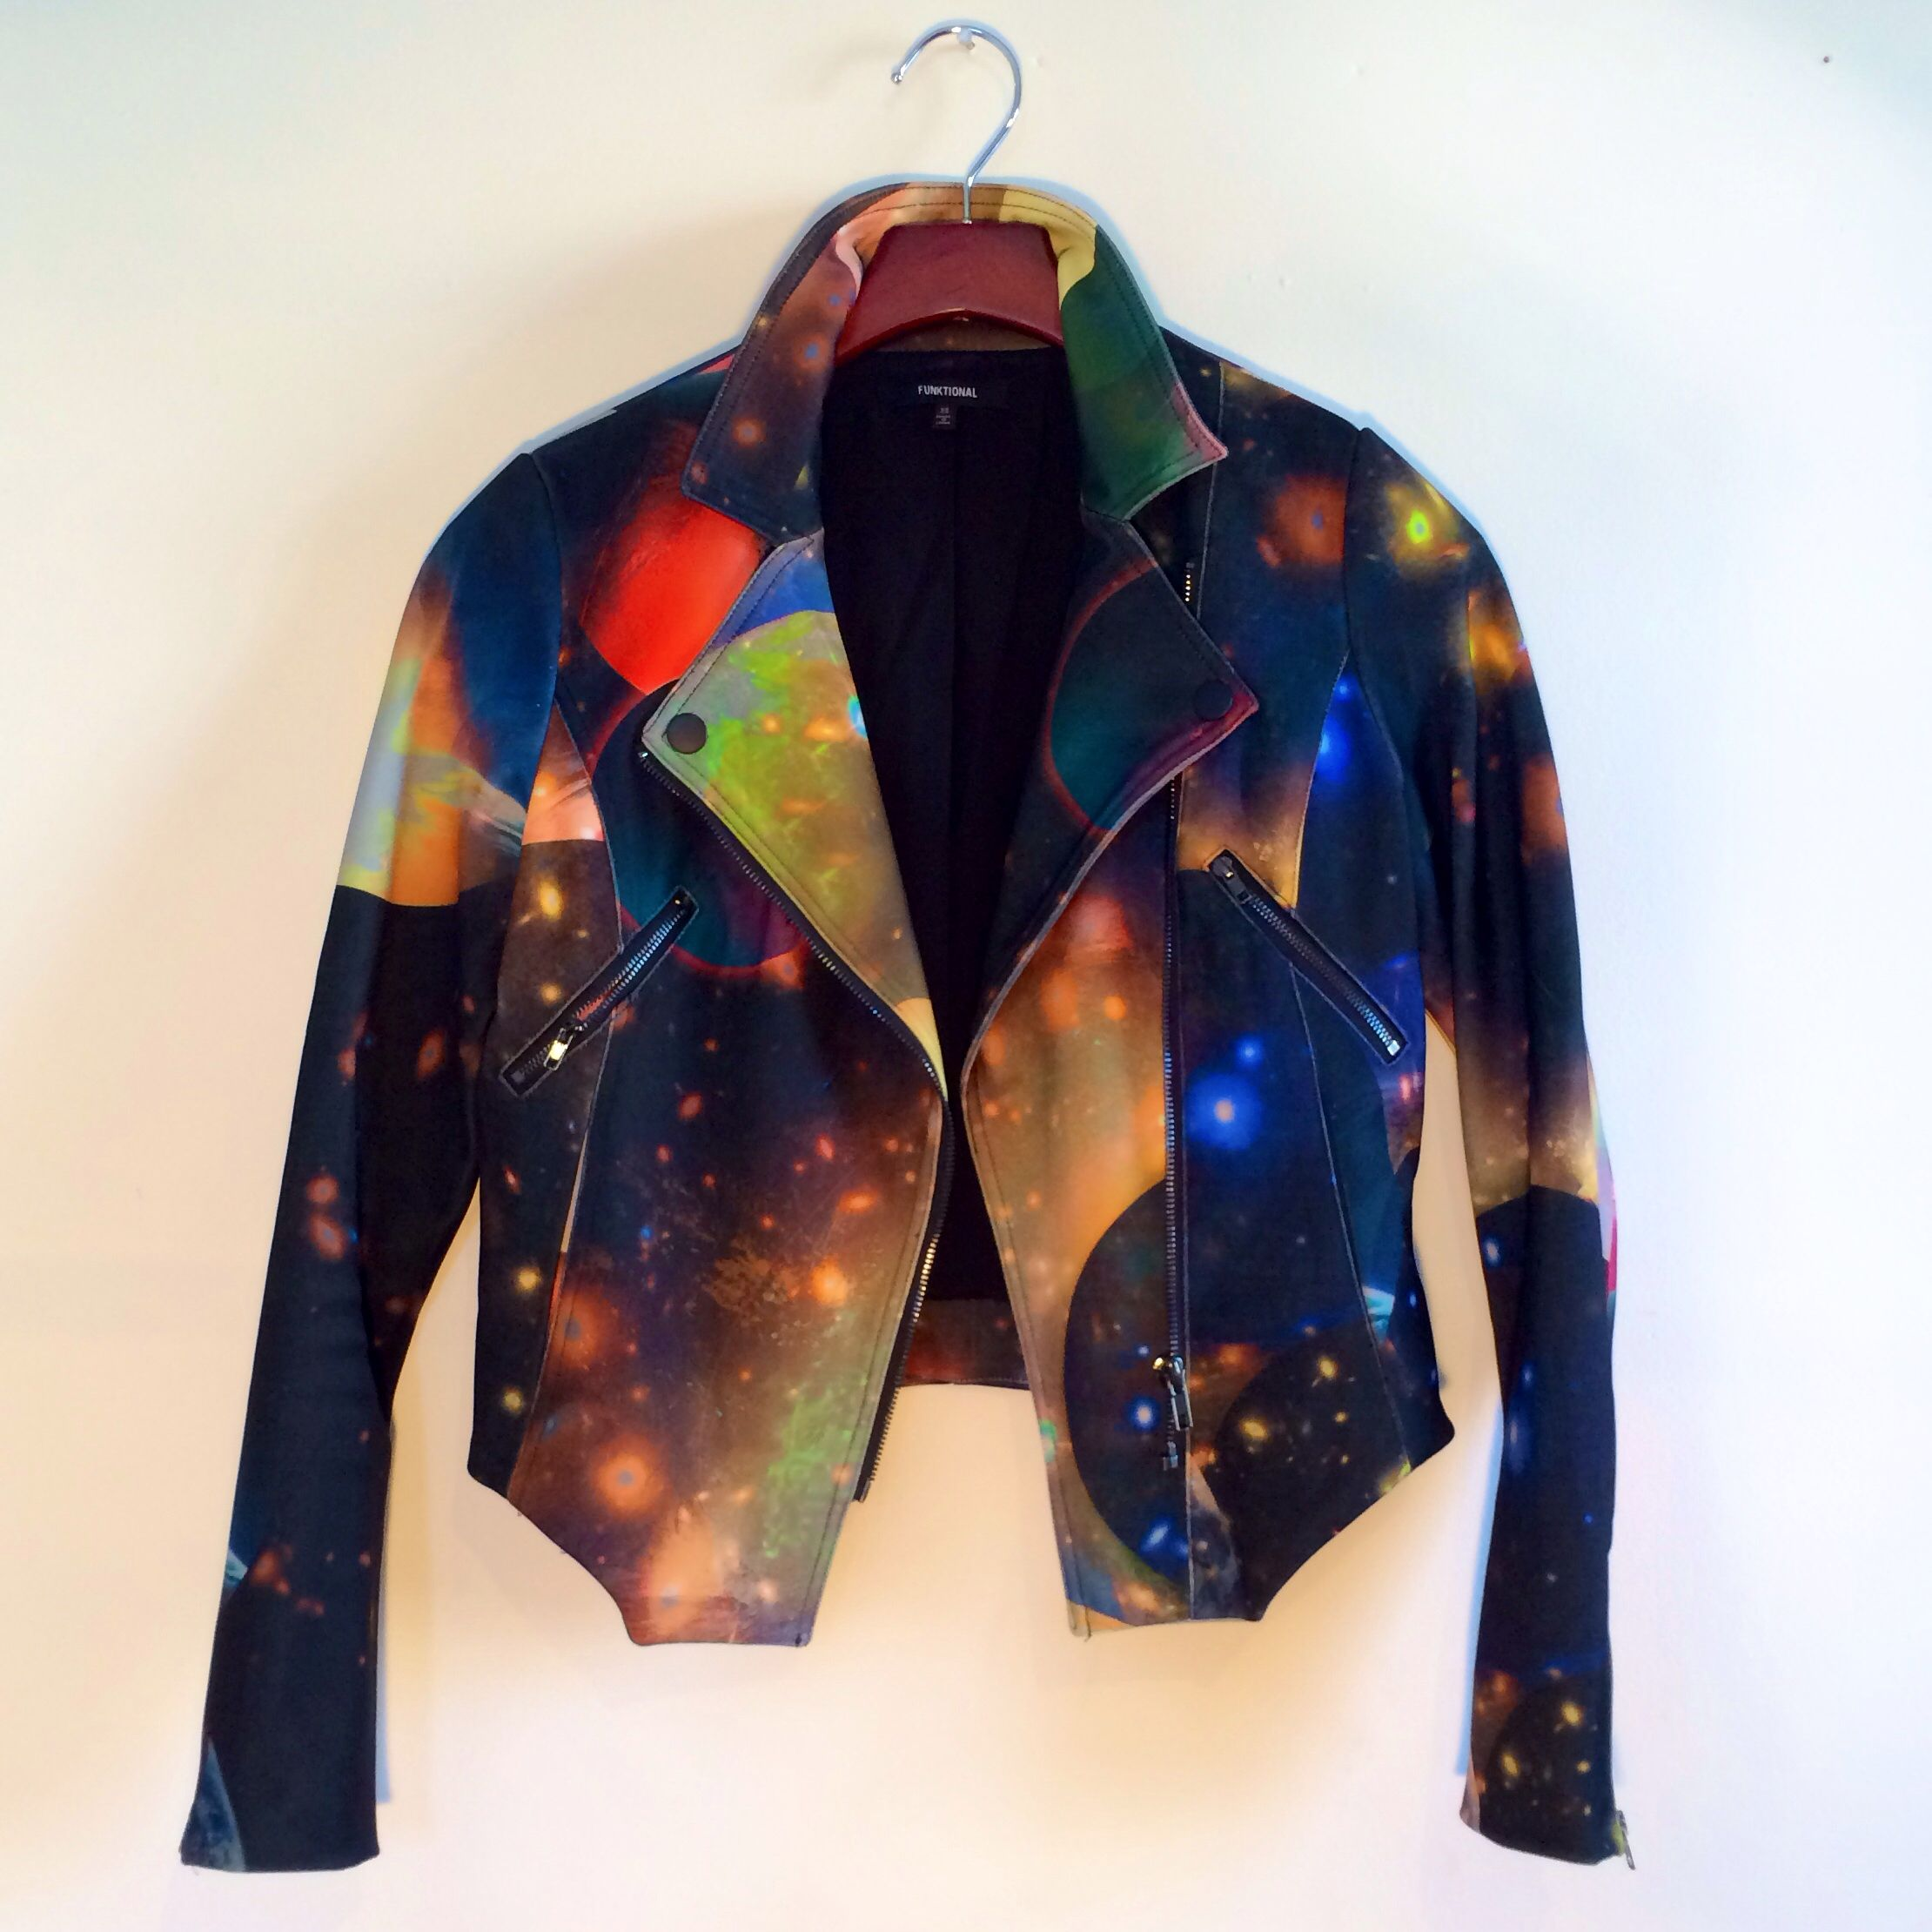 Cosmic dreamer • the cosmic moto jacket by Funktional, the perfect topper to an all black everything outfit • on sale for $115 at shopblacksalt.com